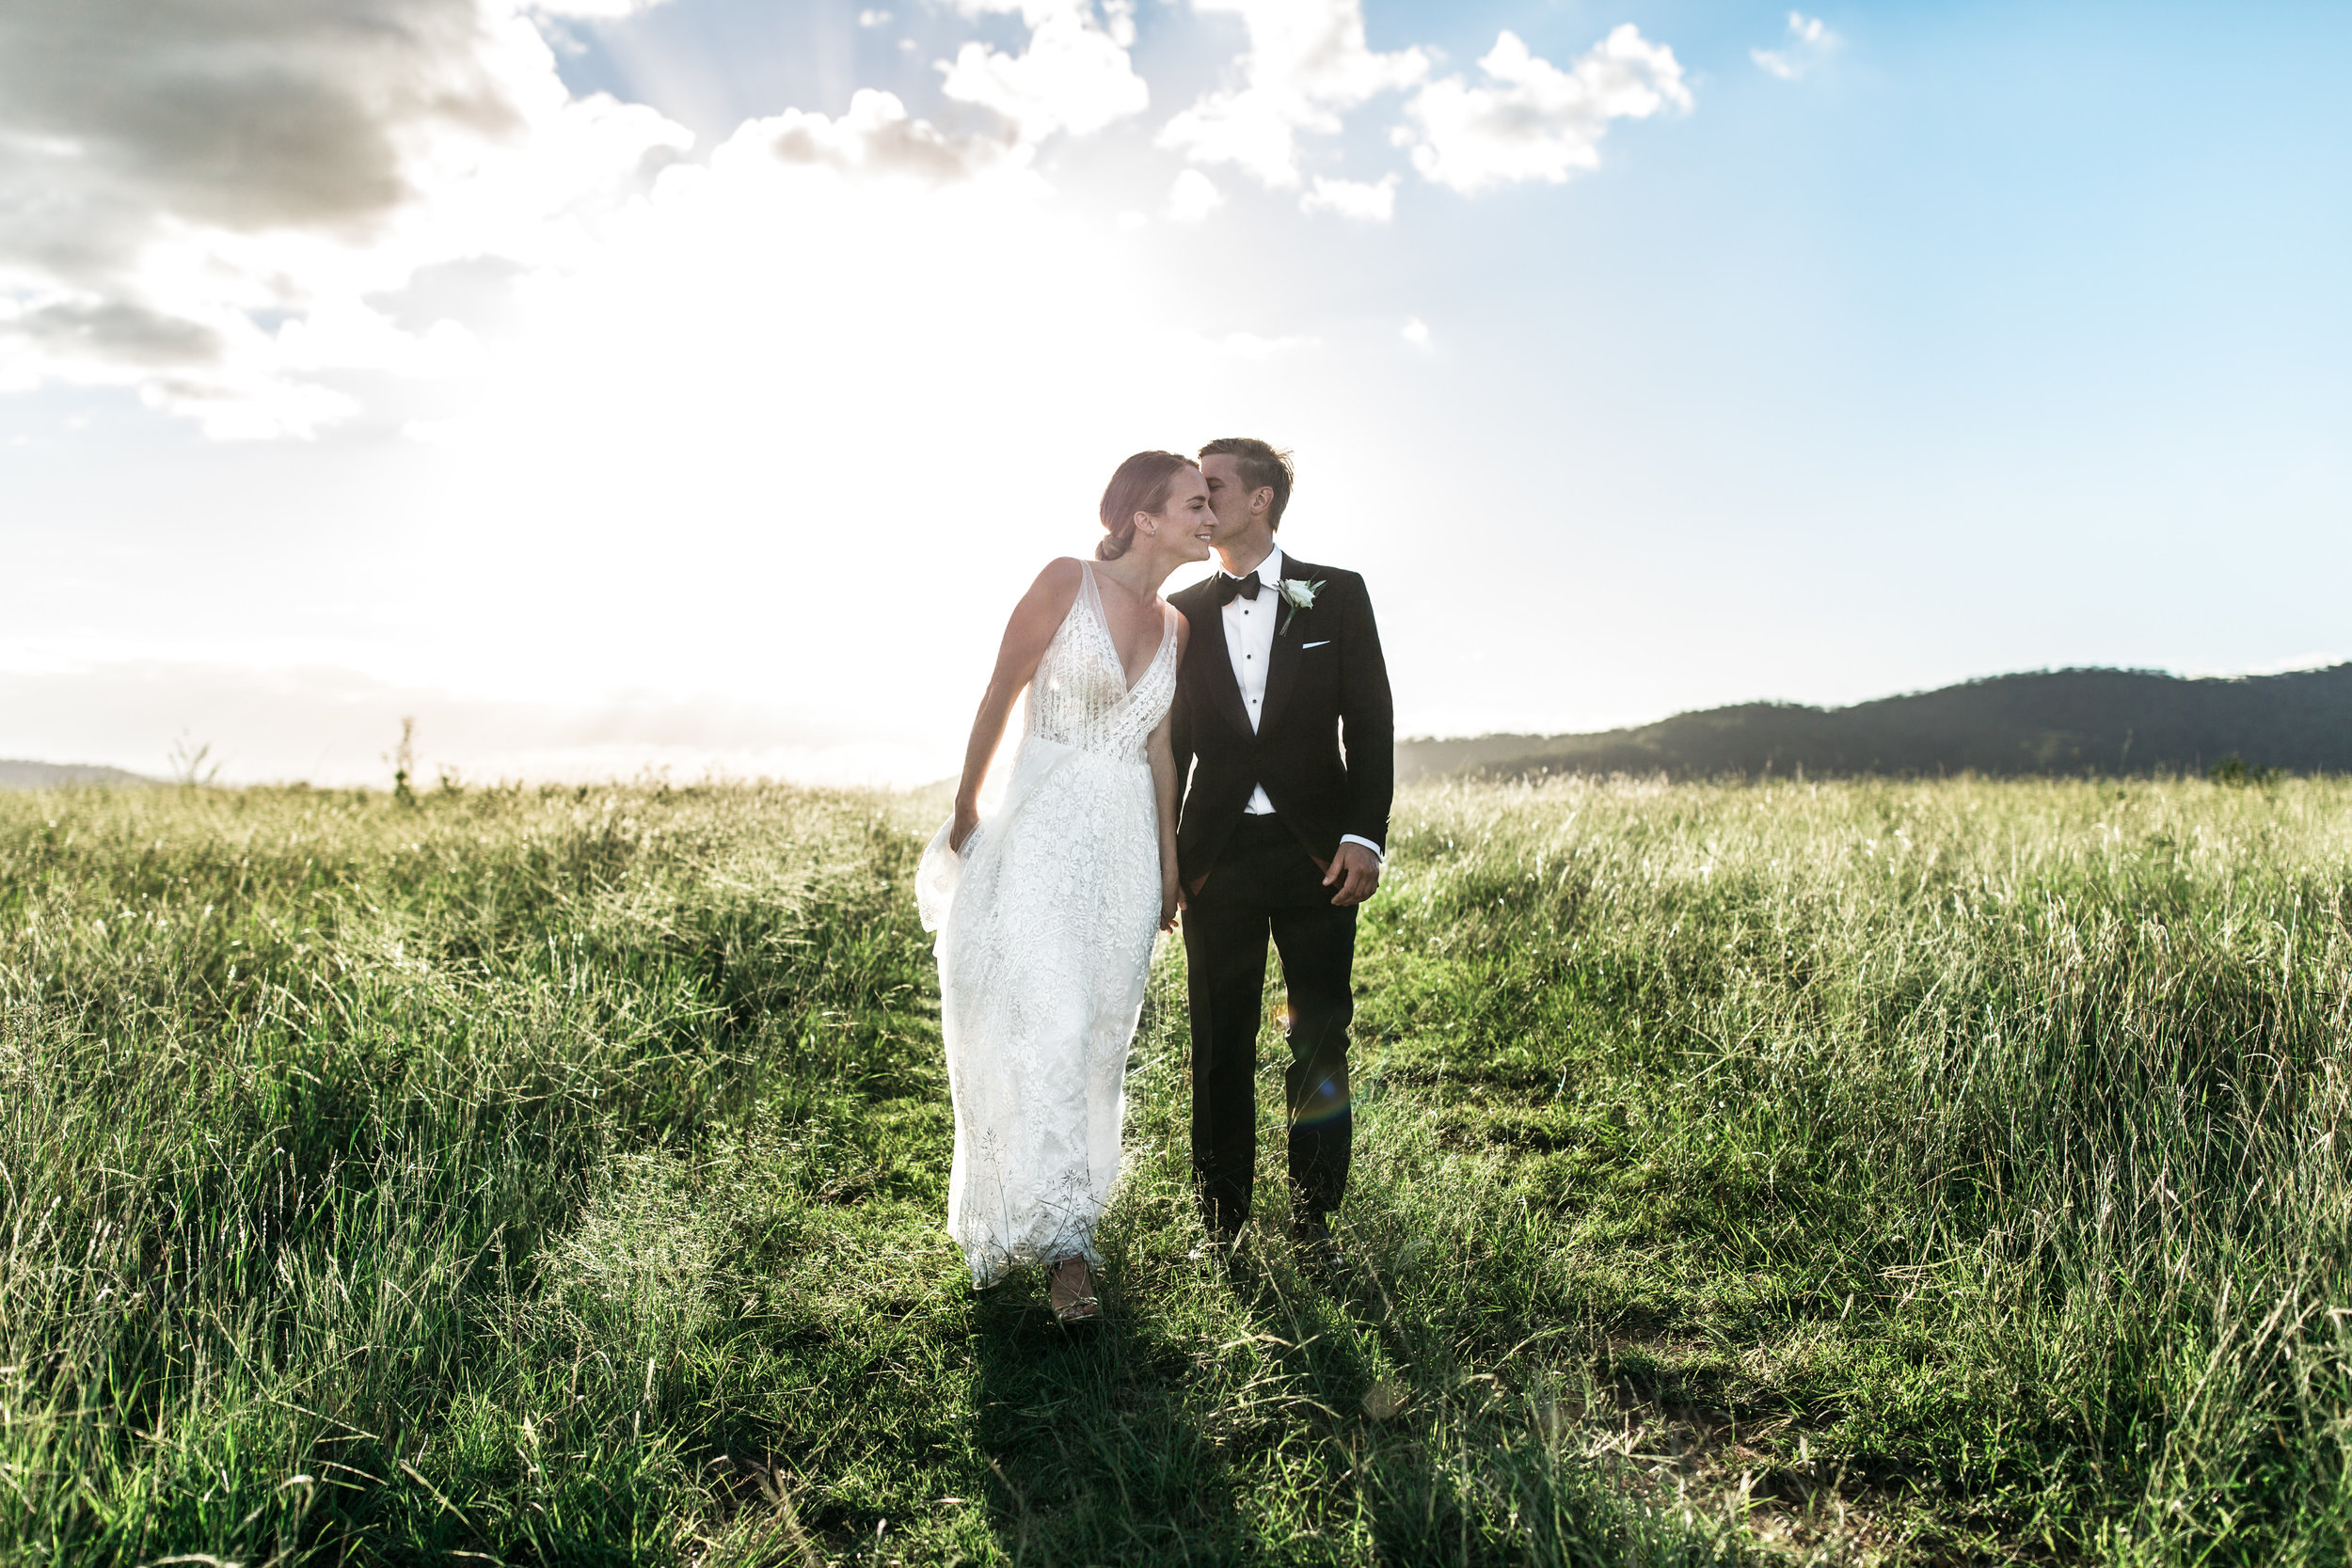 SUS + JACK - MUSWELLBROOK, NSW